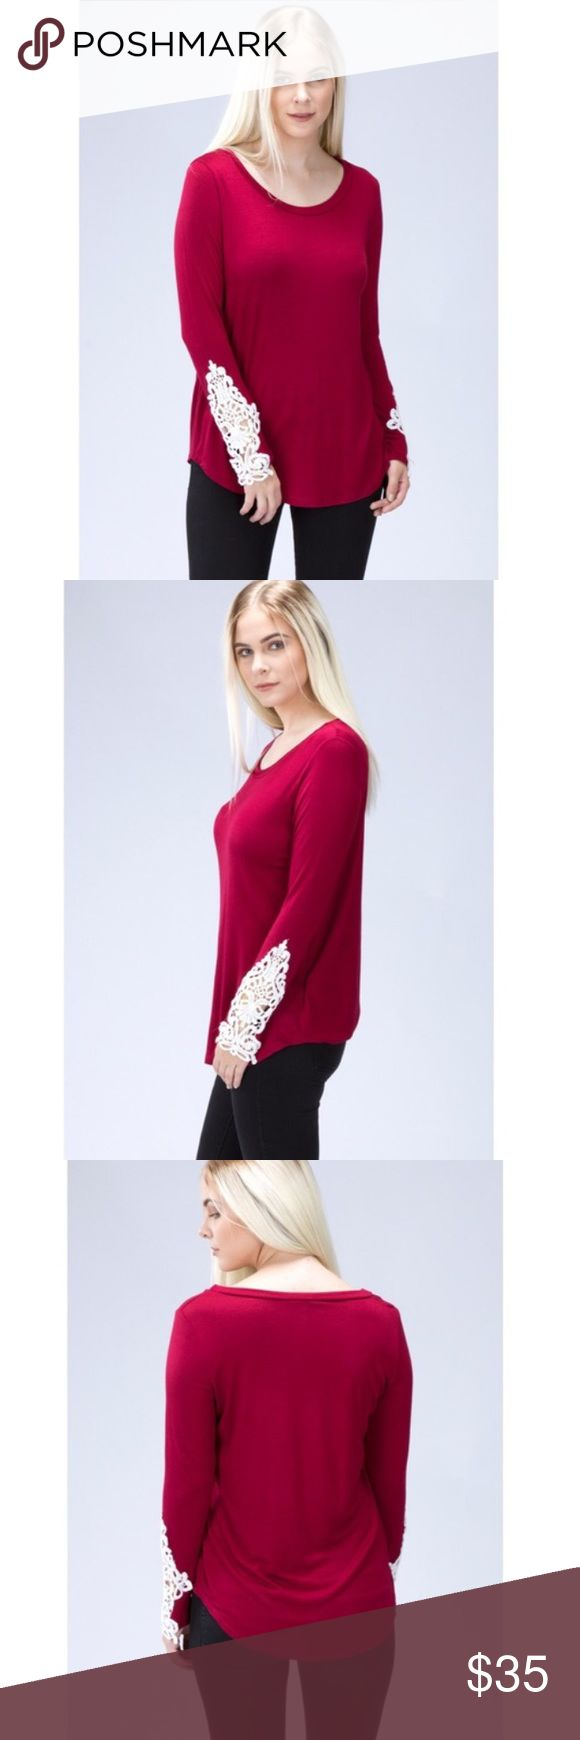 ❤️VALENTINES DAY❤️Burgundy Crochet Sleeves Top Adorable round neck top! Perfect for the holidays! 100% made in the USA! 96% rayon, 4% spandex! Model is wearing a small! Tops Tees - Long Sleeve